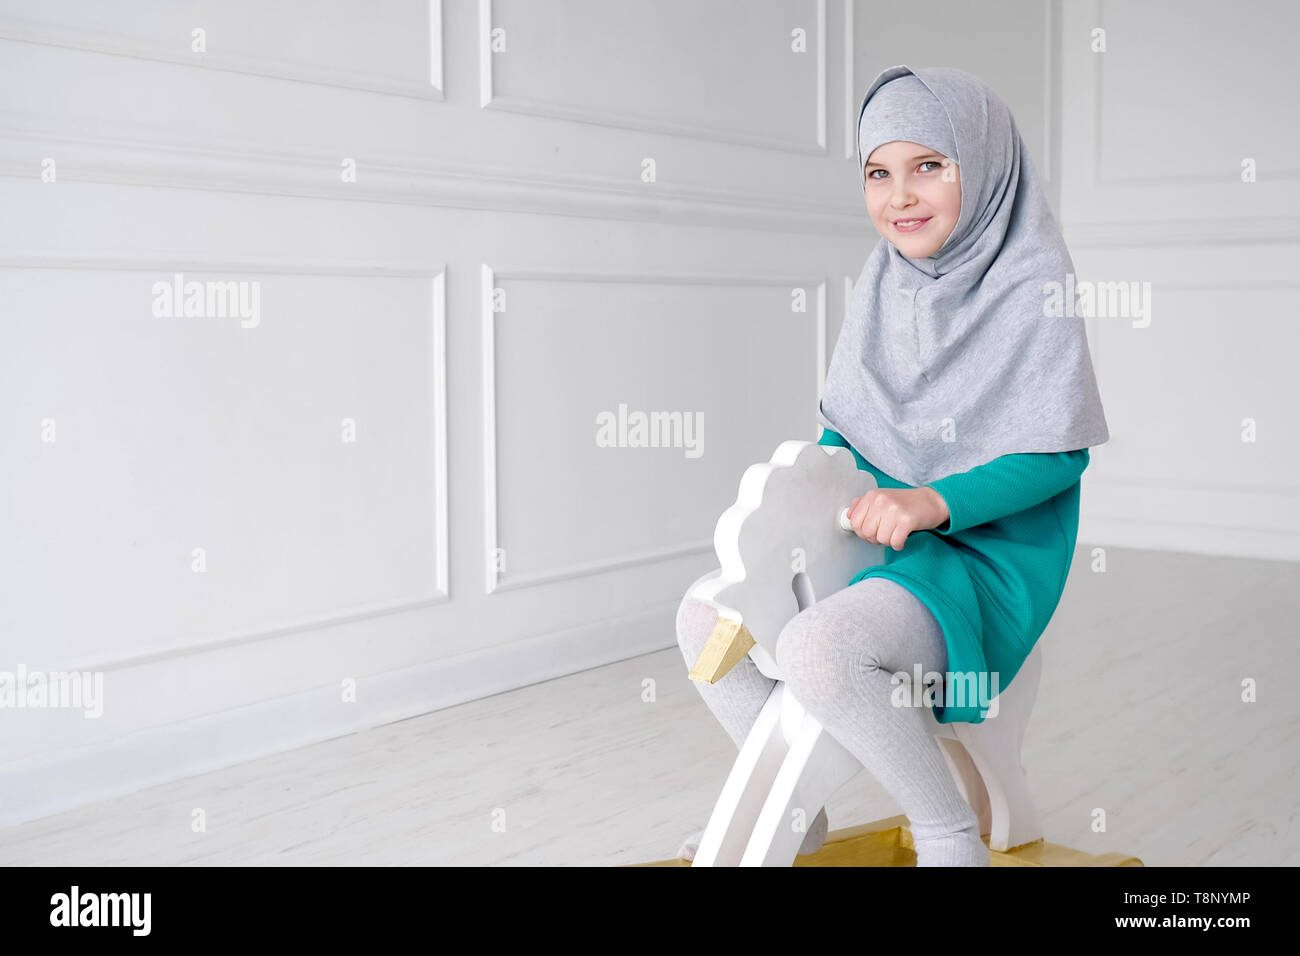 Muslim teen 9 year girl in grey hijab and blue dress is playing riding on toy horse rocking chair in her white modern room. - Stock Image